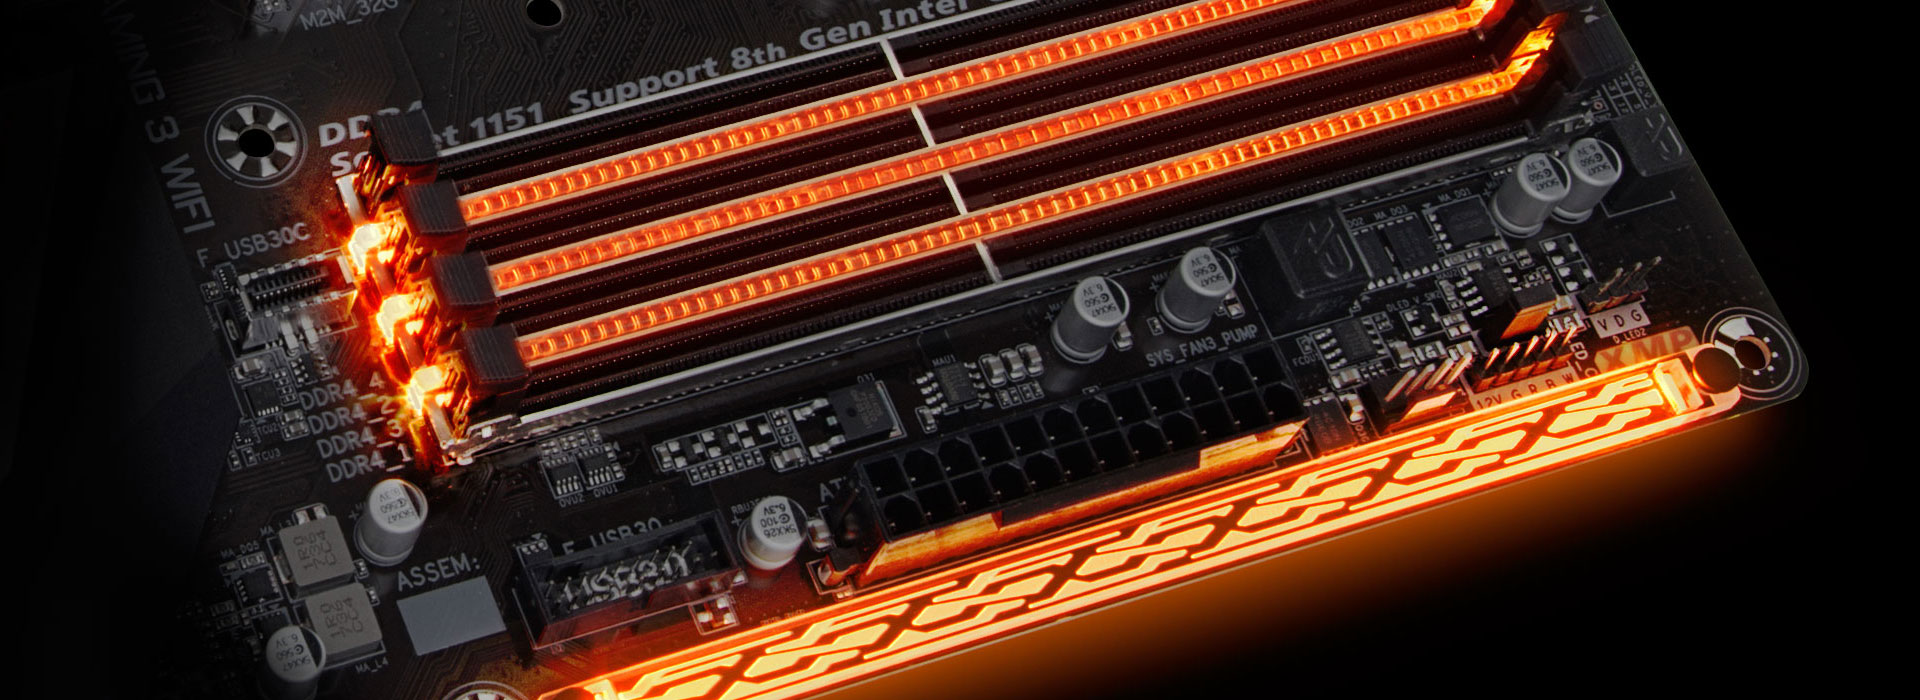 H370 Aorus Gaming 3 Wifi Rev 10 Motherboard Gigabyte Usa Power Connectors Of The Front Panel Connector For Your Reference Namely Memory Pch Audio And Swappable Overlay Accent Led When Its All Set Done System Will Shine Like Never Before